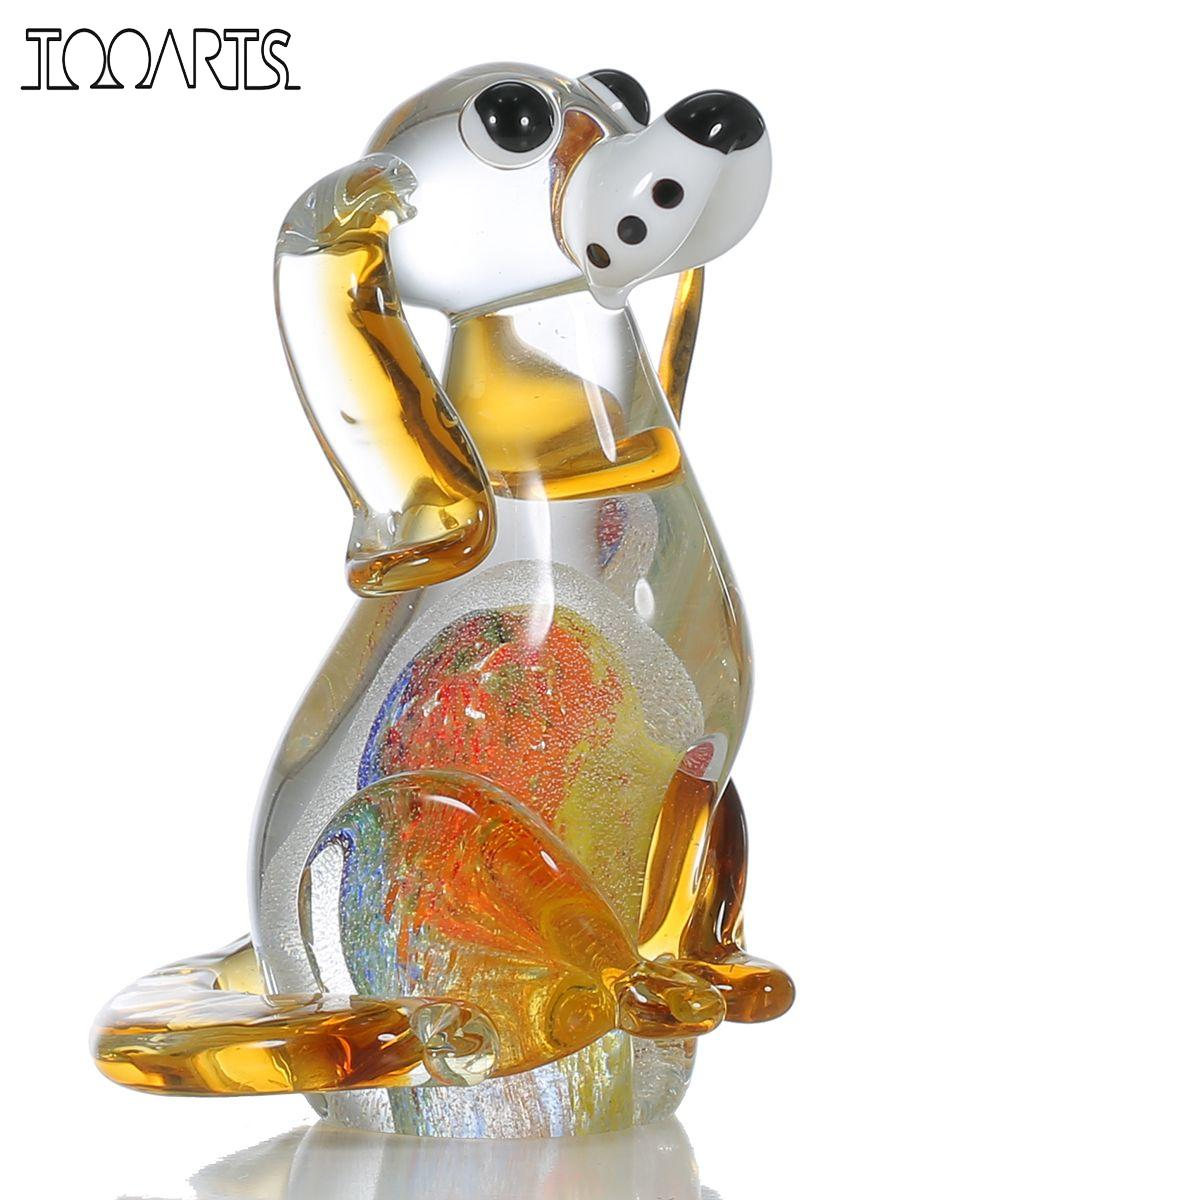 Animal Figurines Home Decor Tooarts Puppy Dog Glass Figurine Home Decor Animal